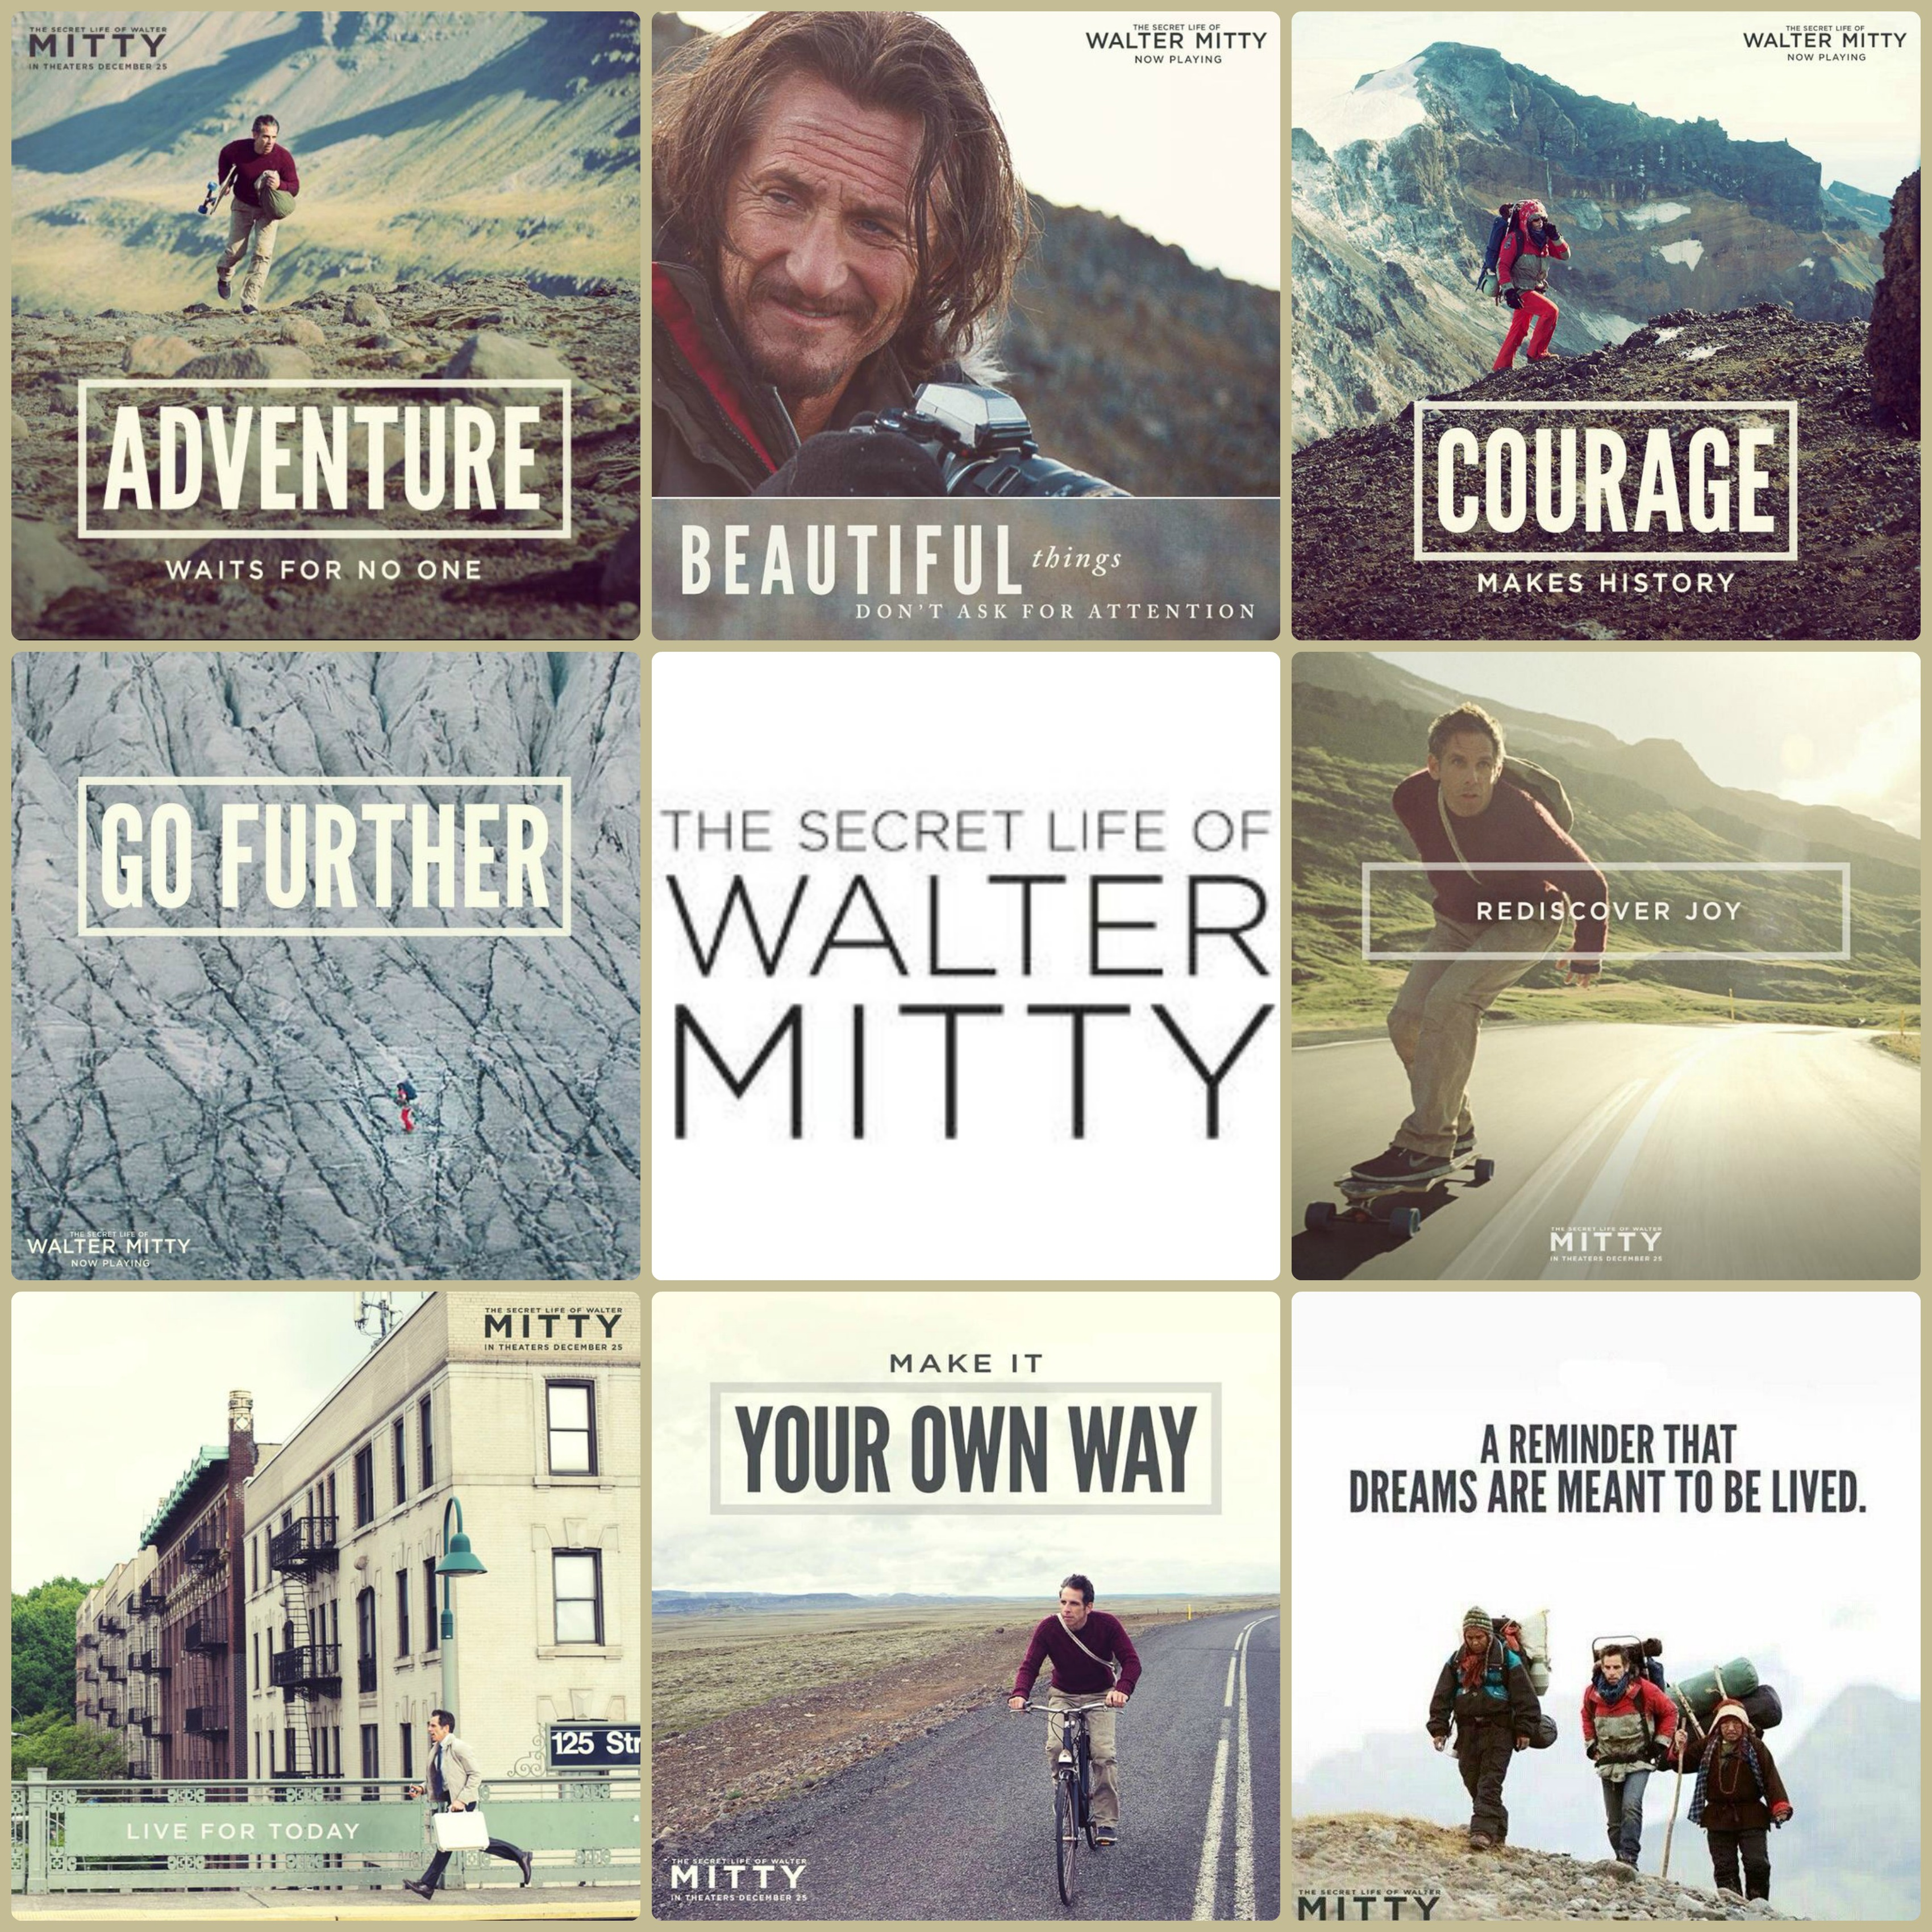 Secret Life Of Walter Mitty Quotes Wallpaper The Secret Life Of Walter Mitty Always Find Joy In The